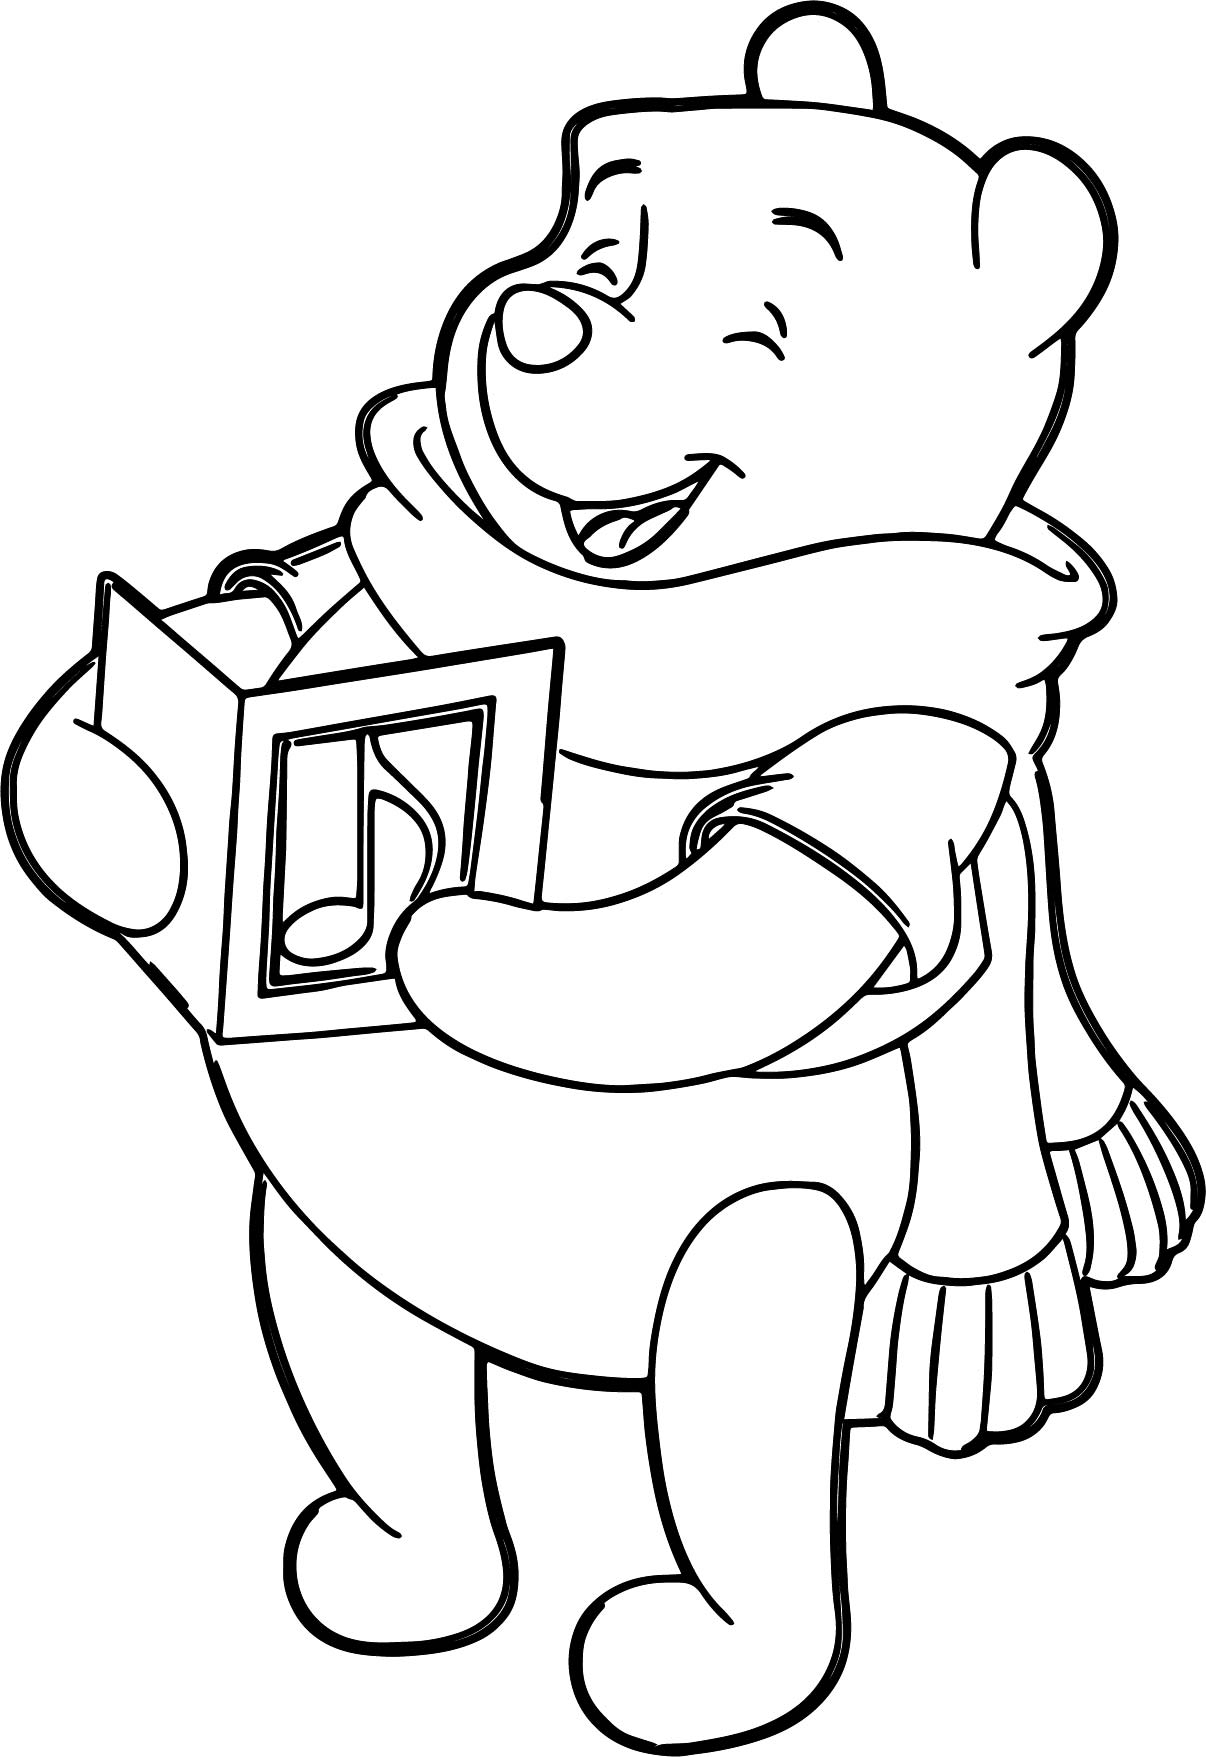 Winnie The Pooh With Scarf Music Song Coloring Page